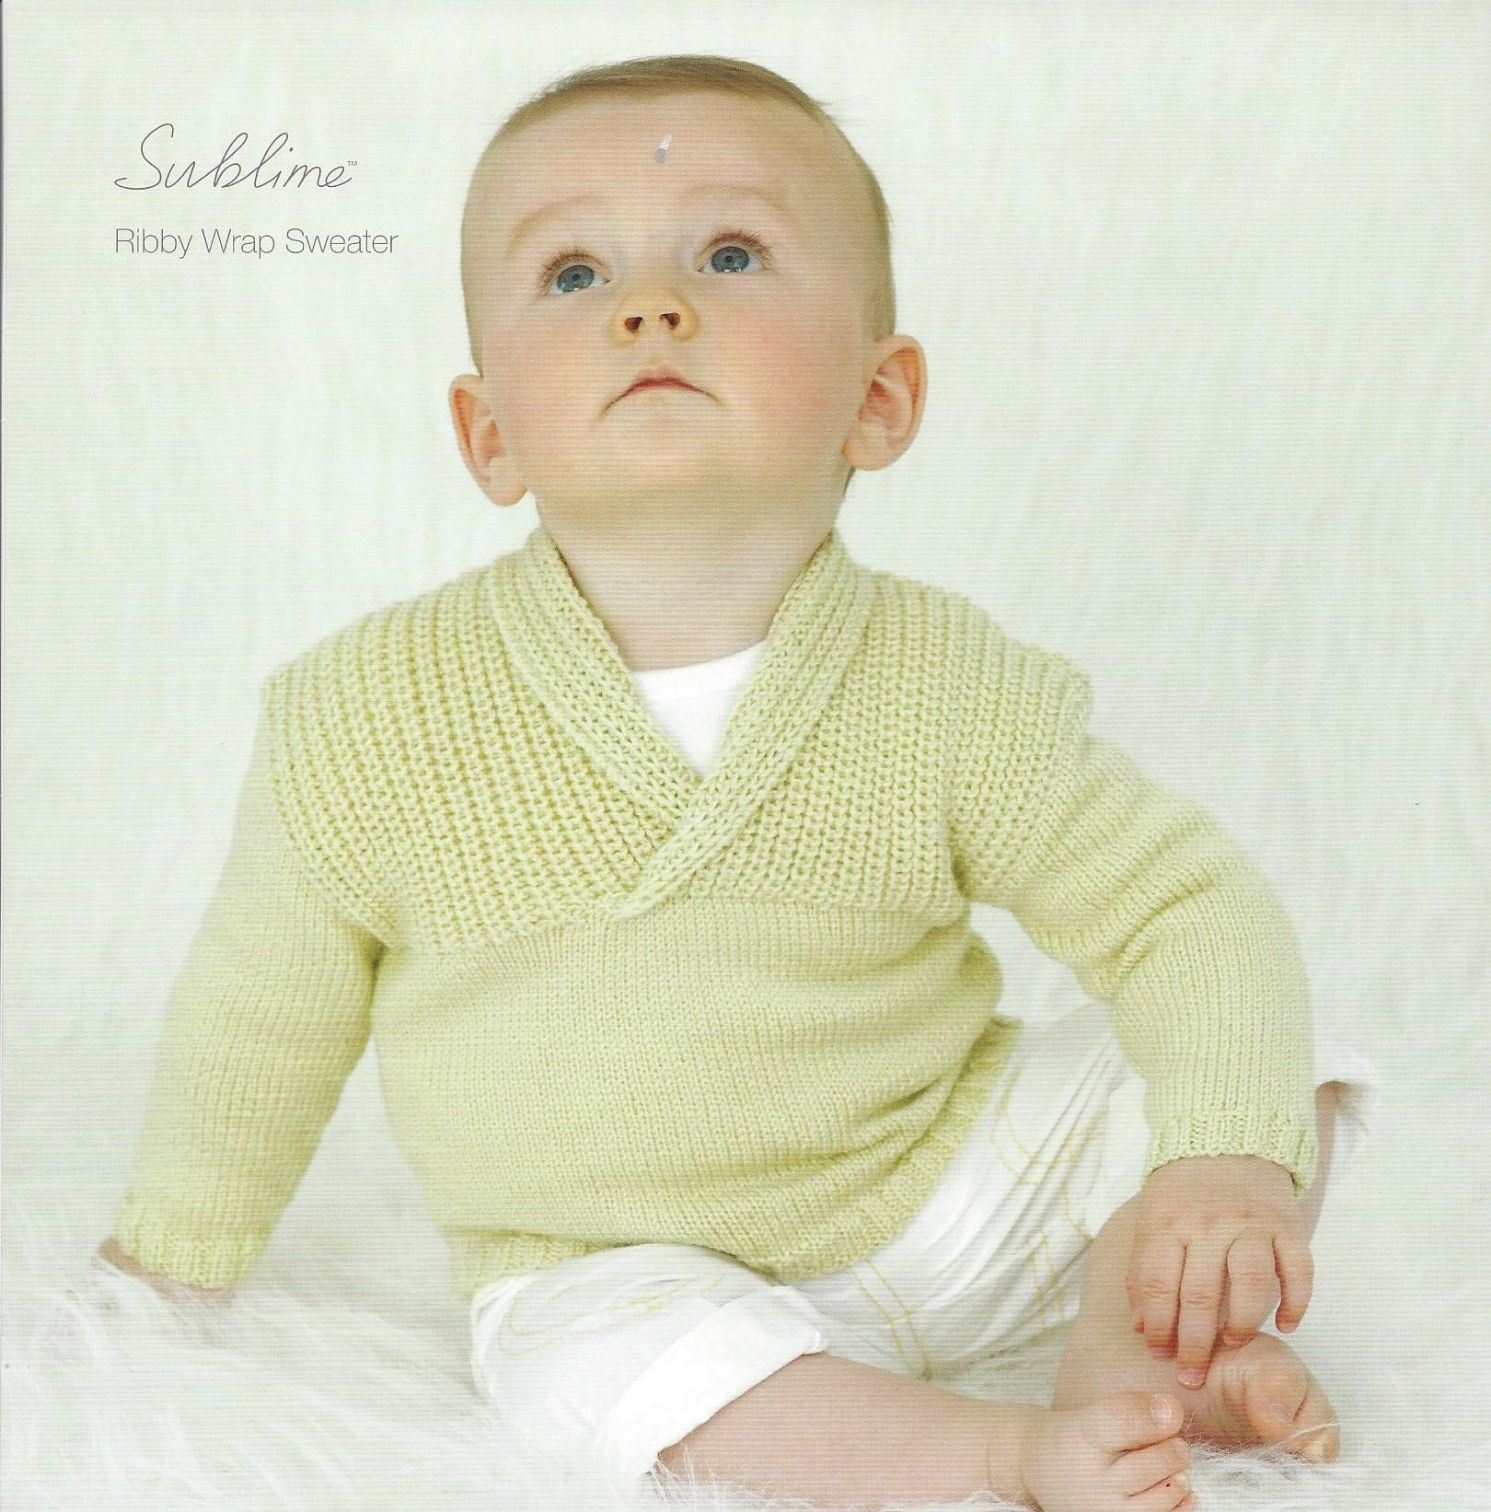 ca476eaa1 616 - The irresistibly Sublime baby 4 ply book